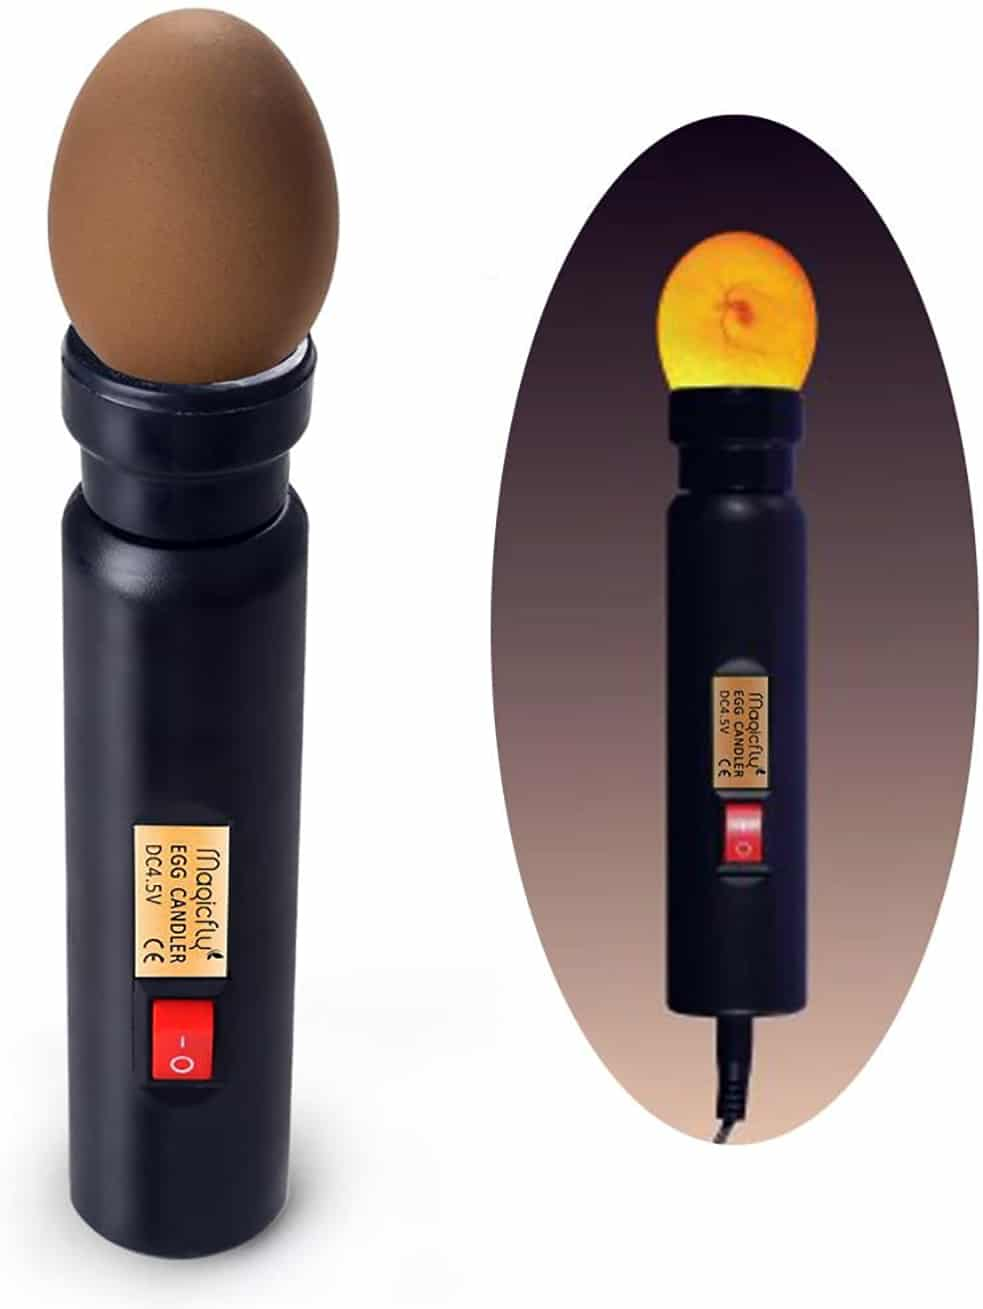 Light Egg Candler Tester review